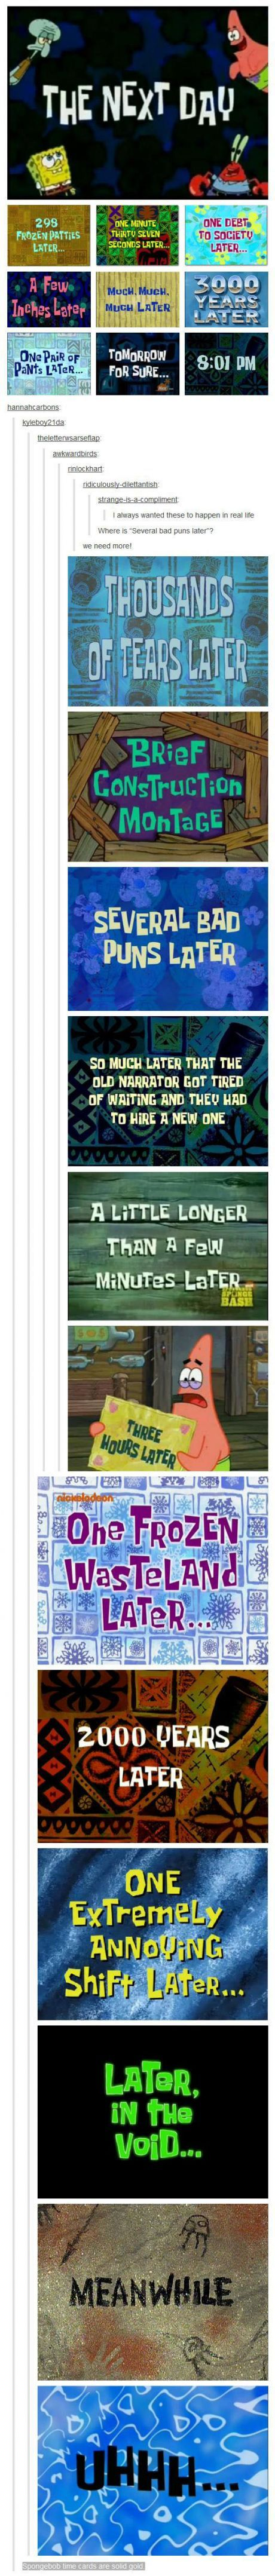 "Spongebob time cards are the best. But! The all important ""One Eternity Later"" card is missing!"